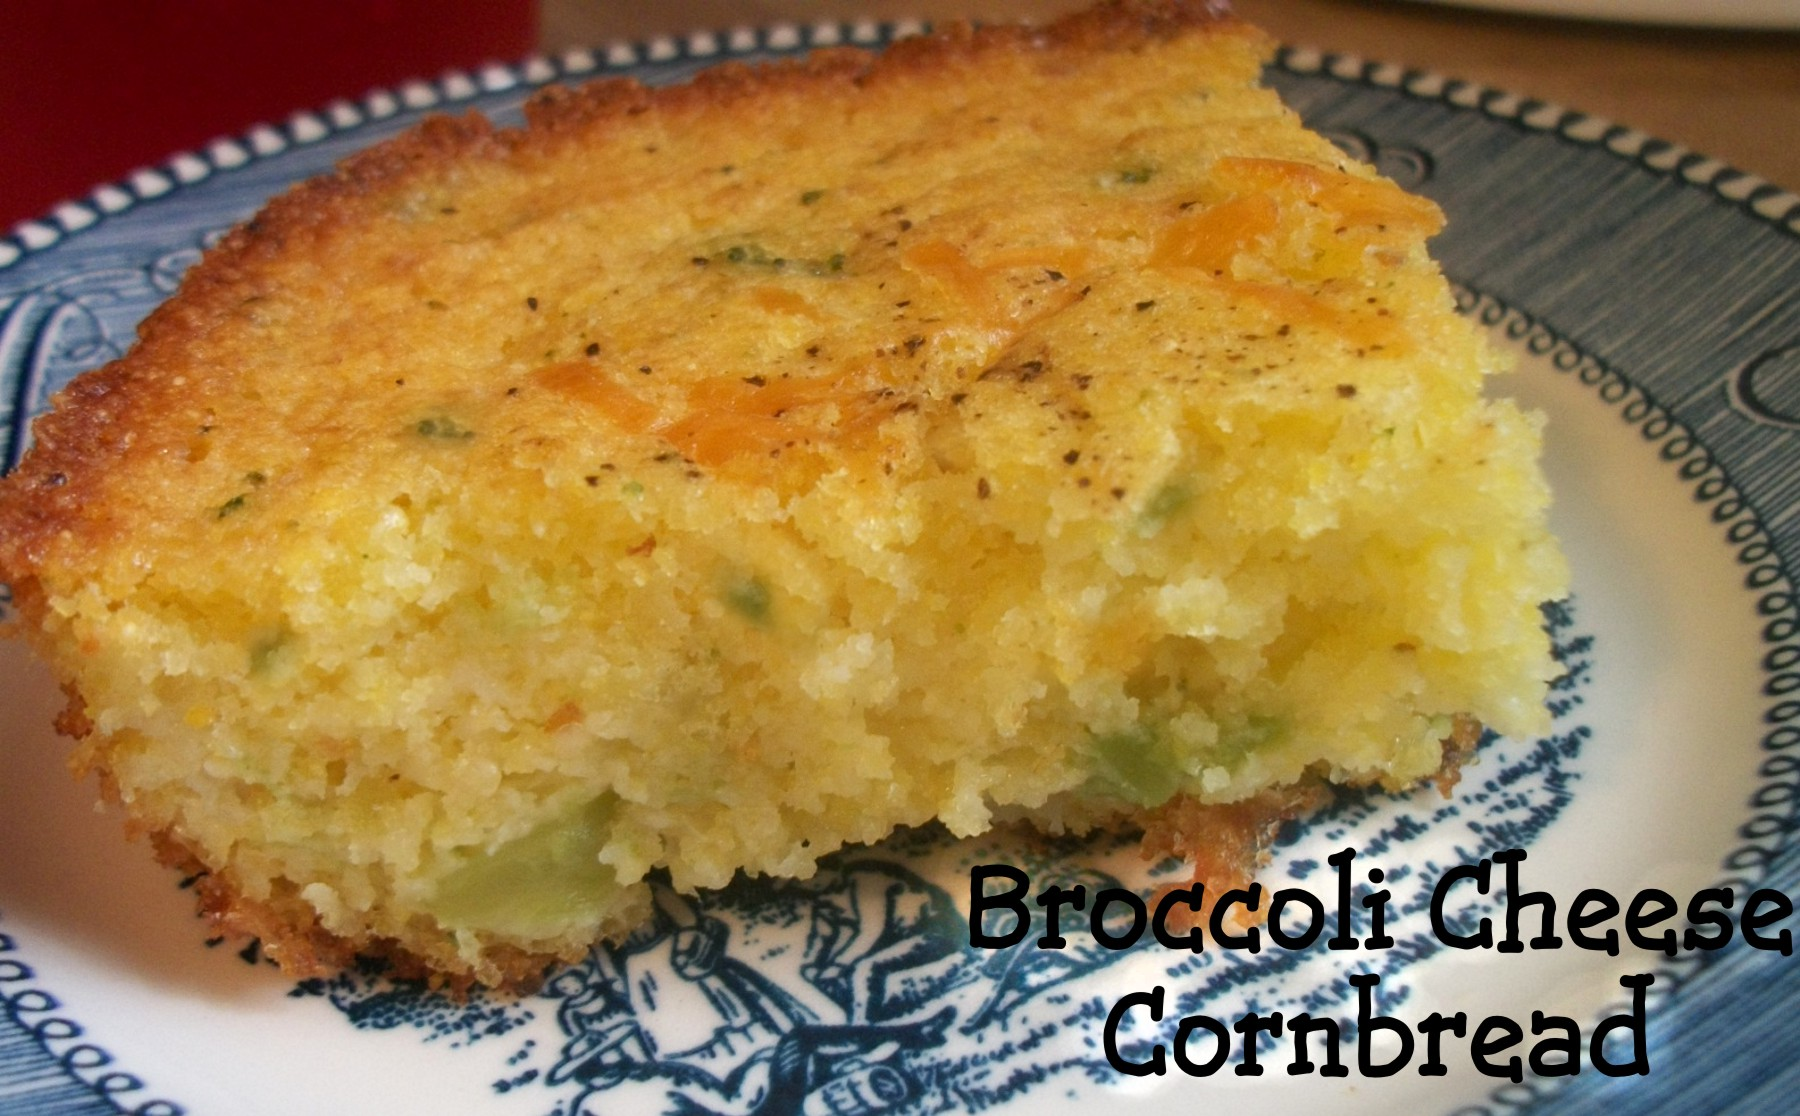 Broccoli Cheese Cornbread | Heart of a Country Home